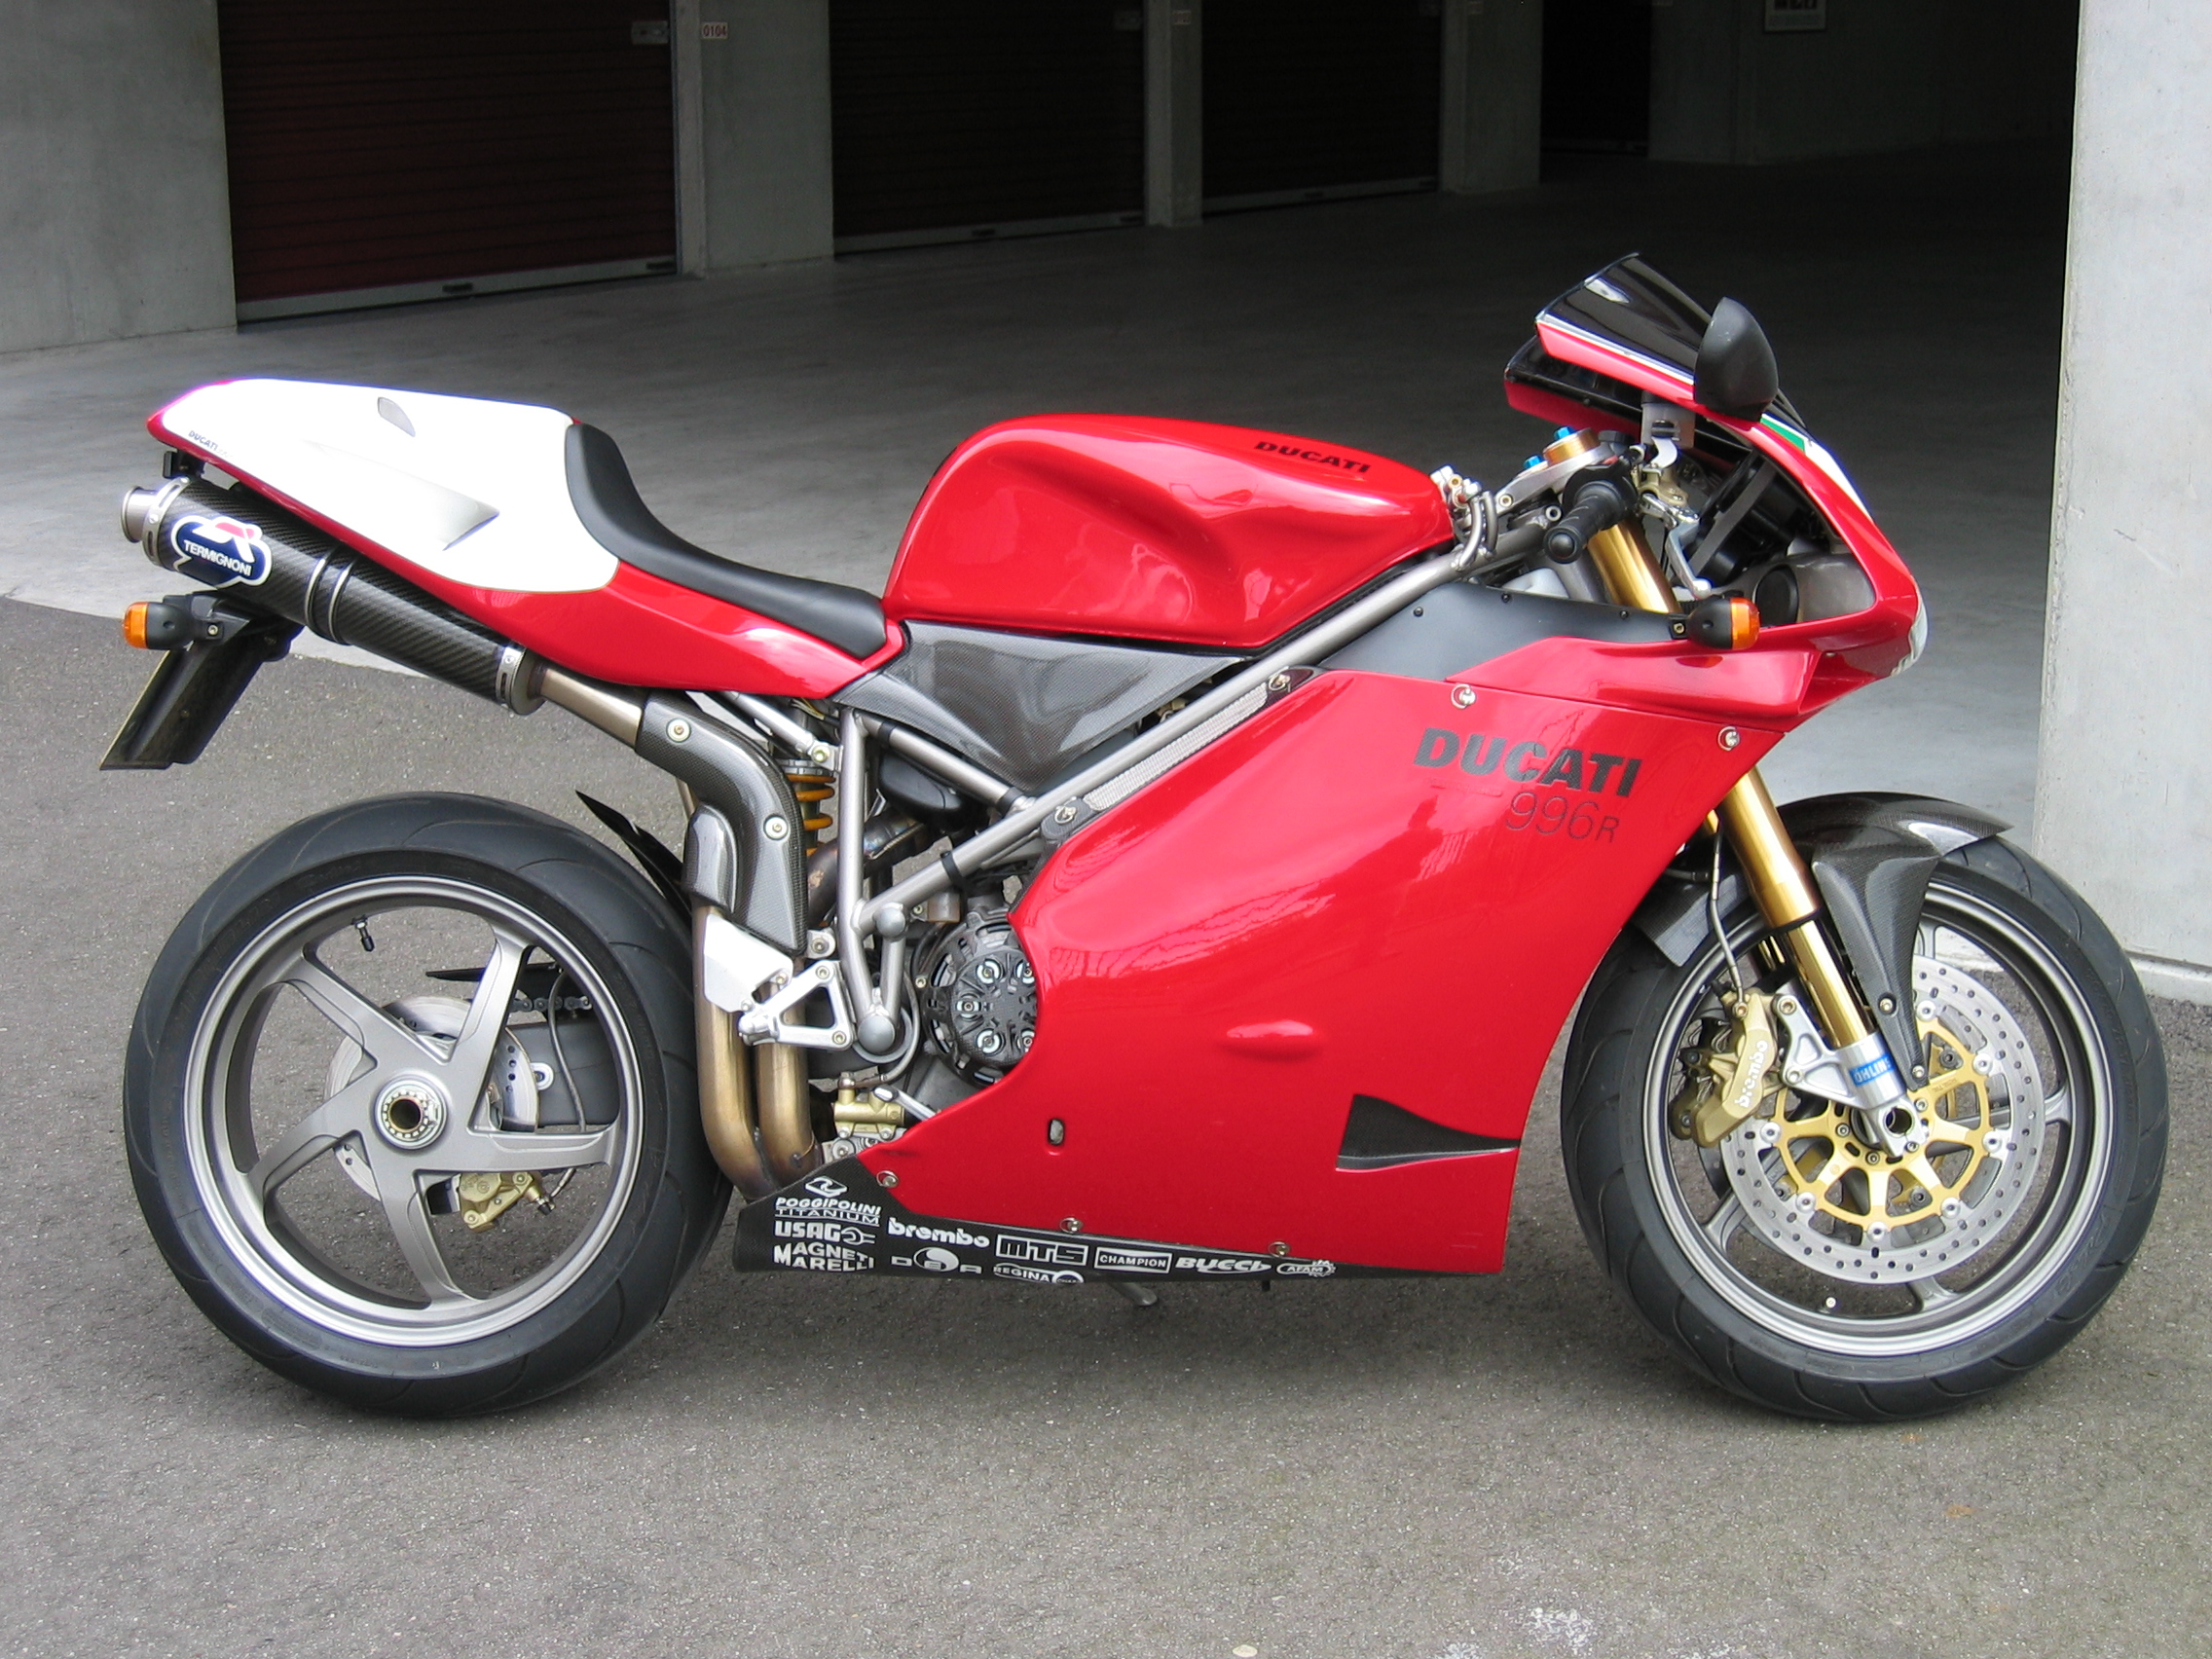 ducati 996 - review and photos